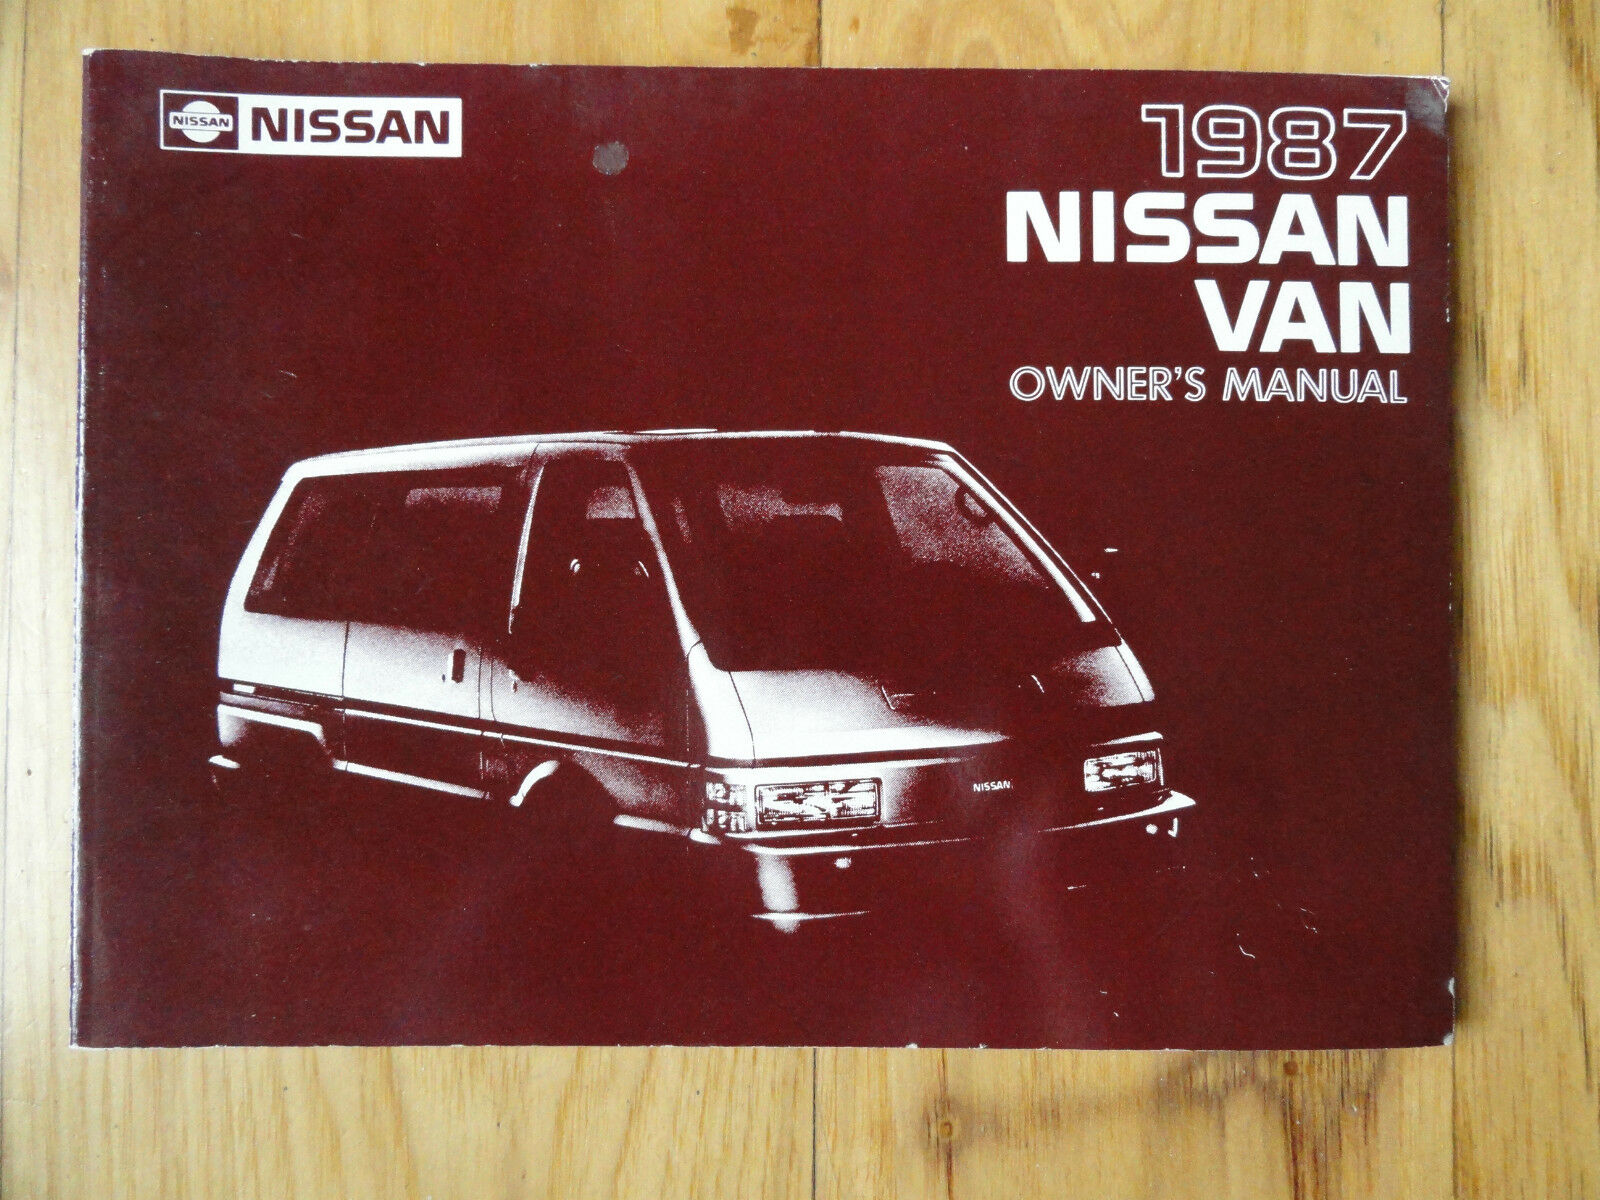 1987 Nissan Van Owner's Manual 1 of 1Only 1 available ...